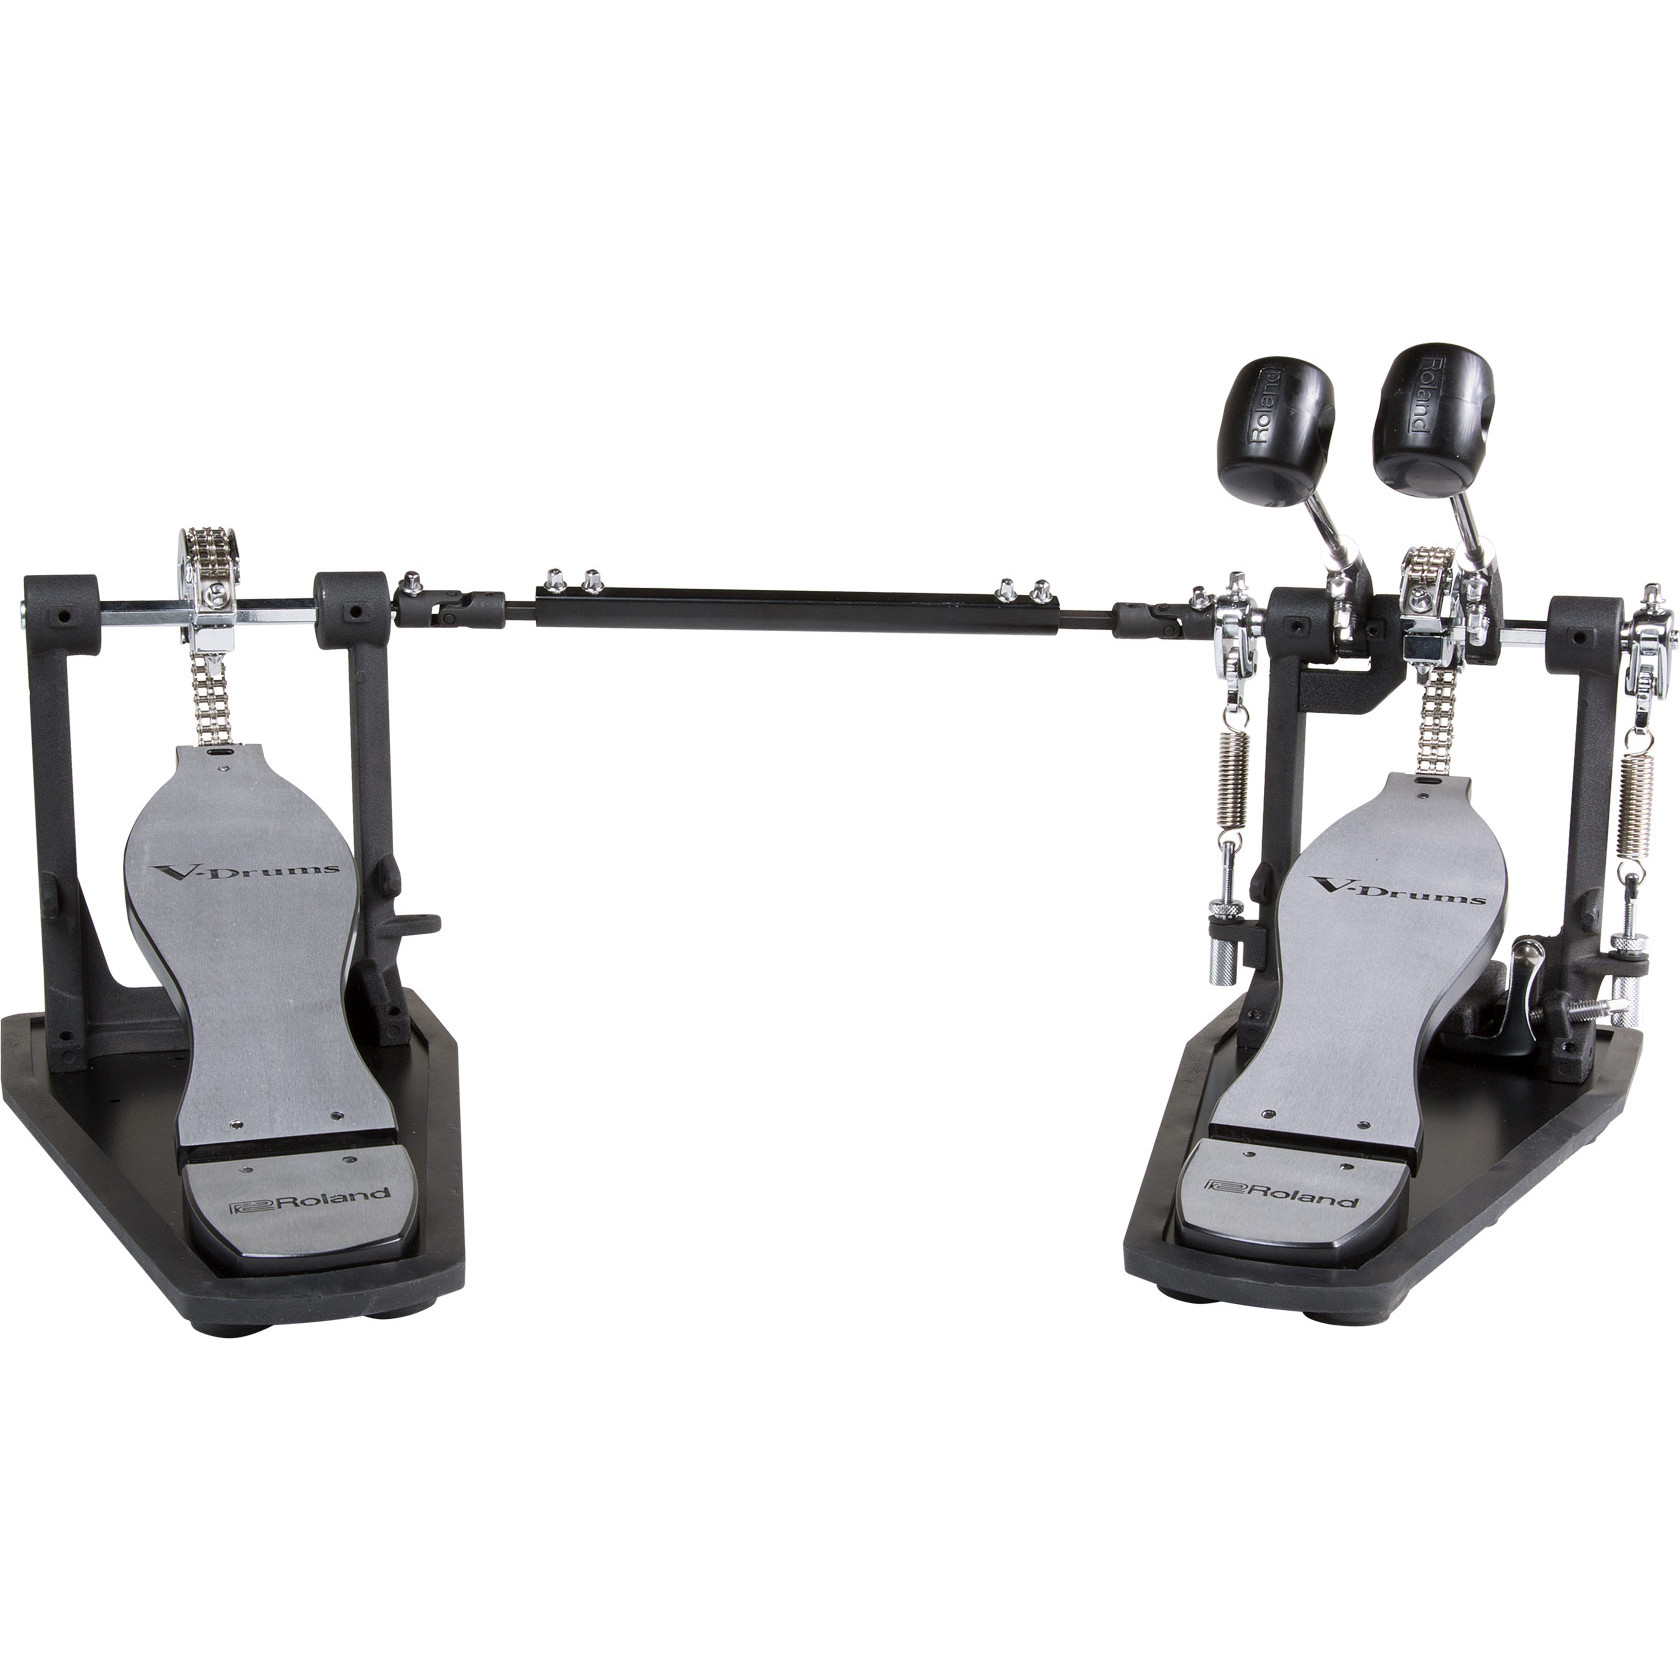 Roland RDH 102 V Drums double bass drum pedal with Noise Eaters